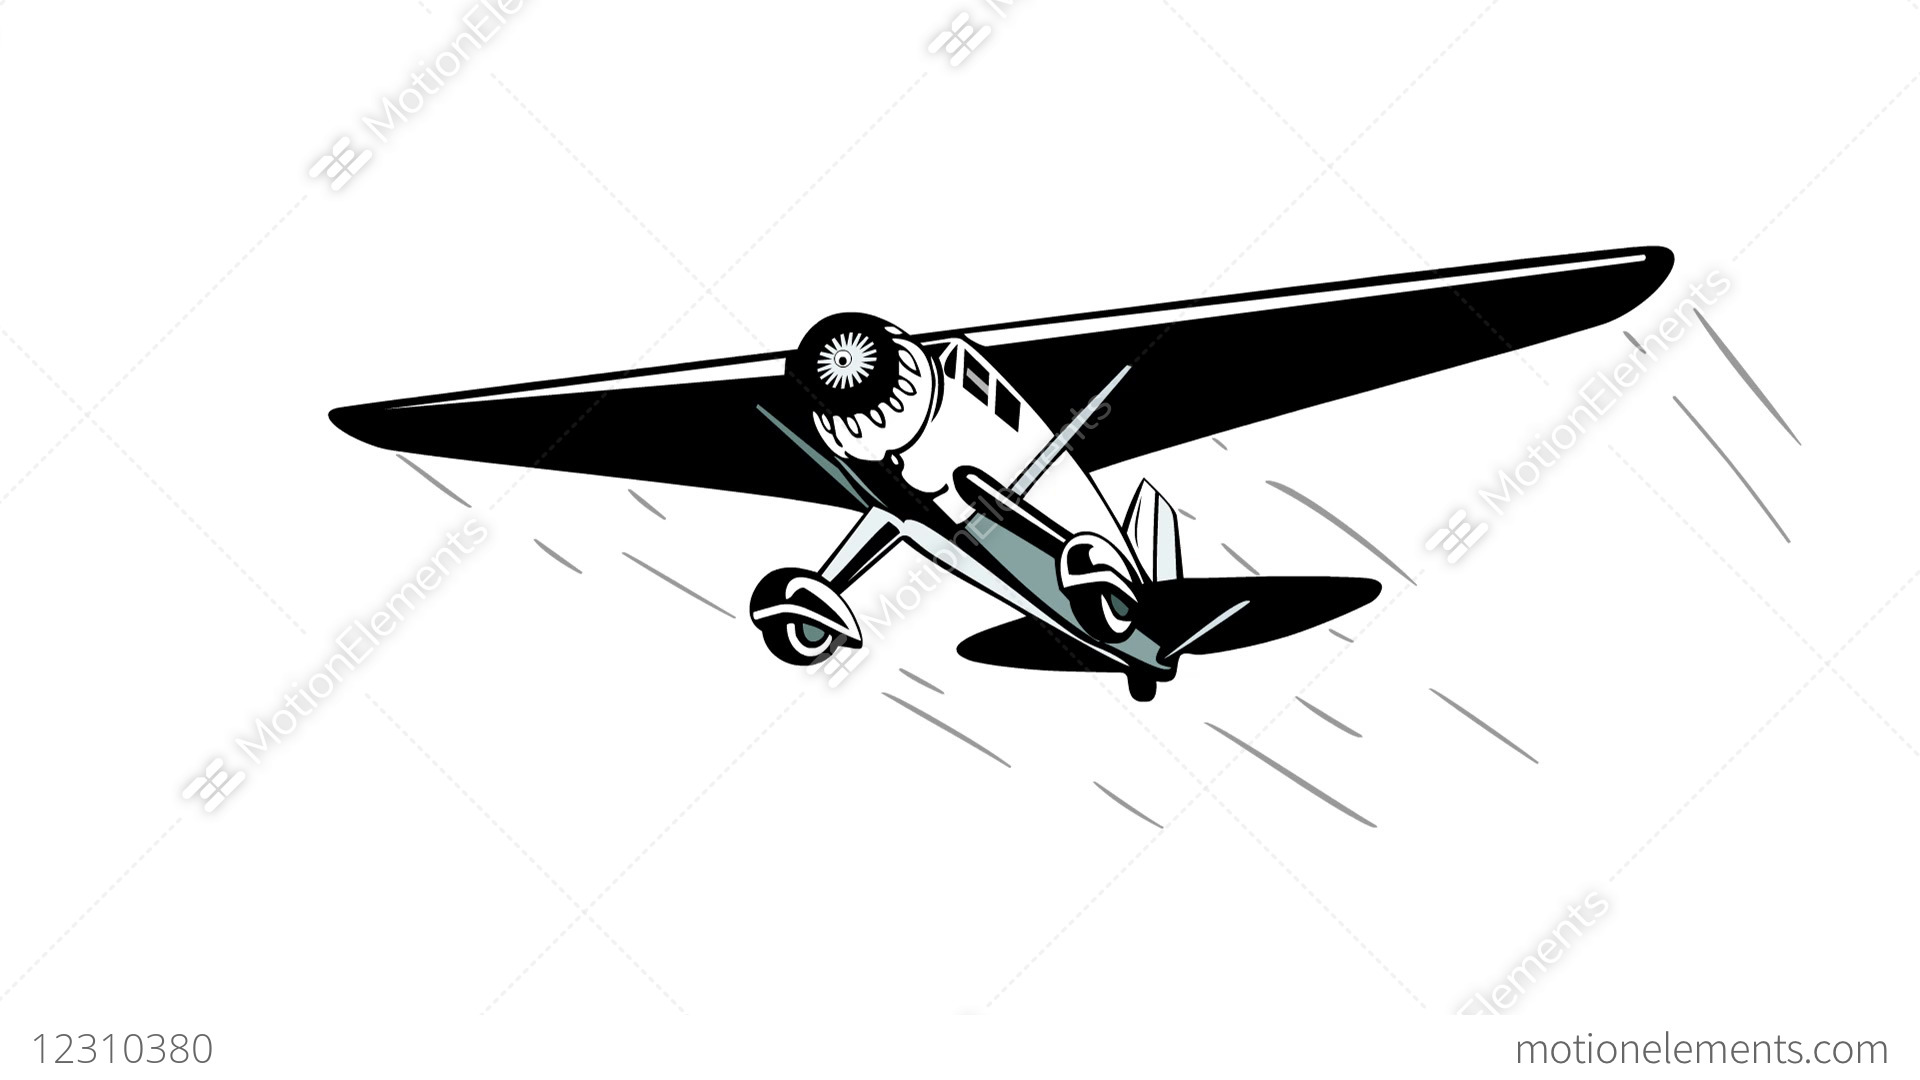 S Propeller Aircraft Flying 2d Animation Stock Animation